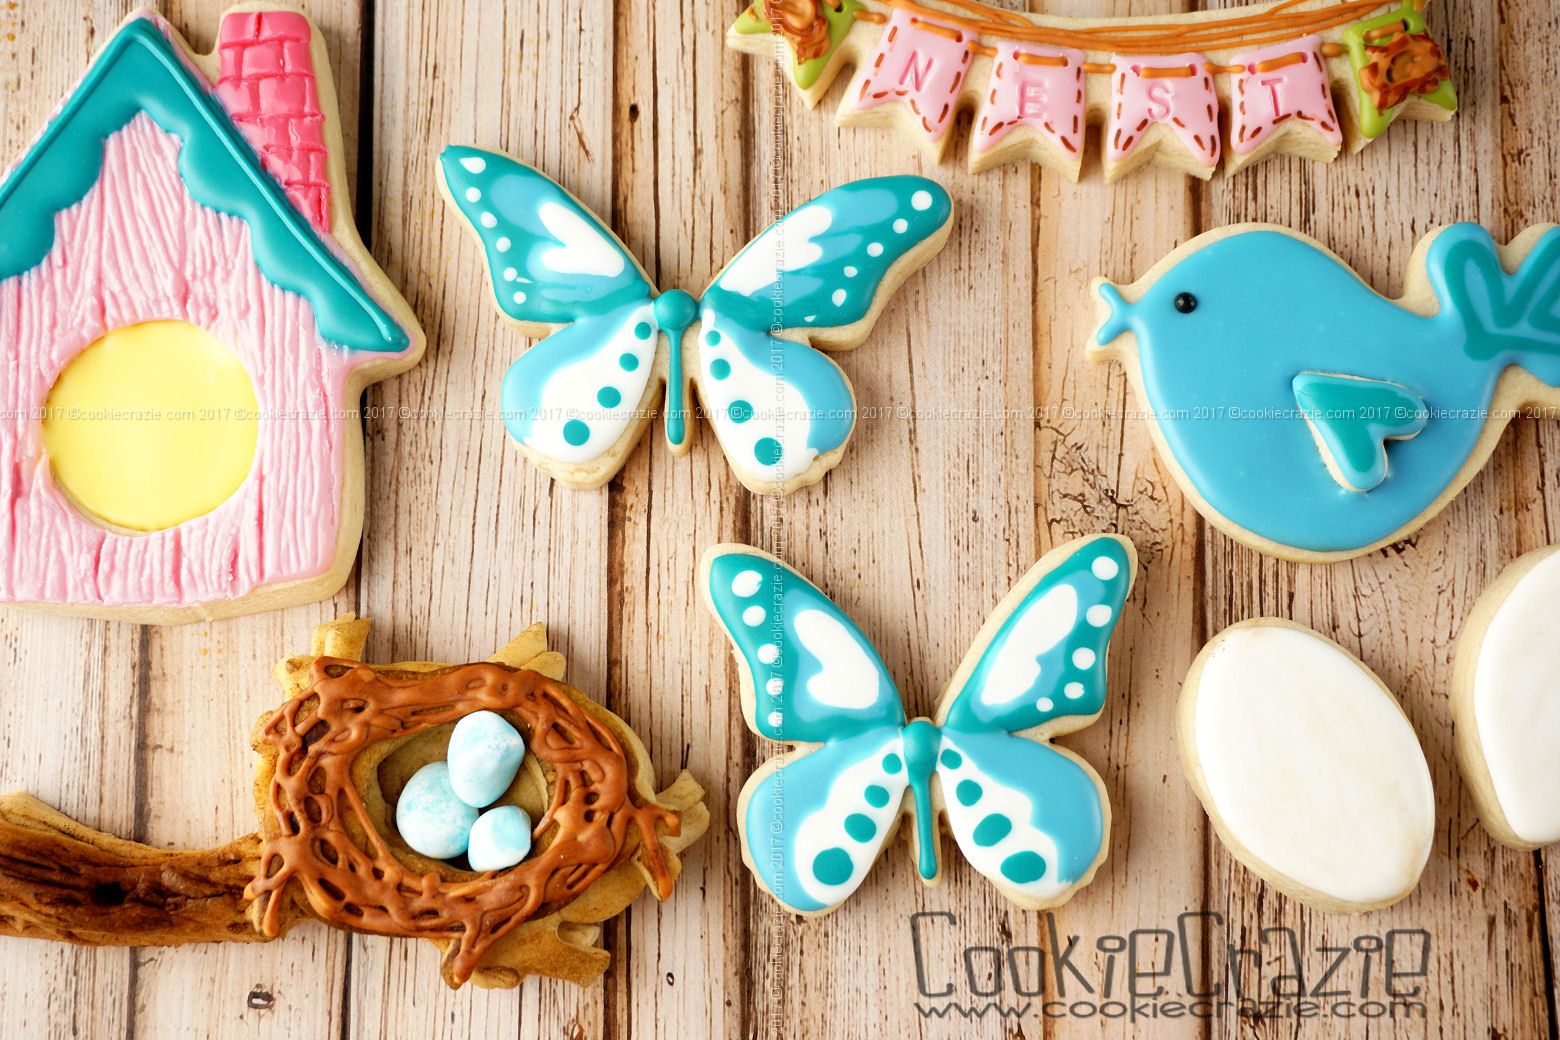 Butterfly Decorated Sugar Cookie YouTube video  HERE